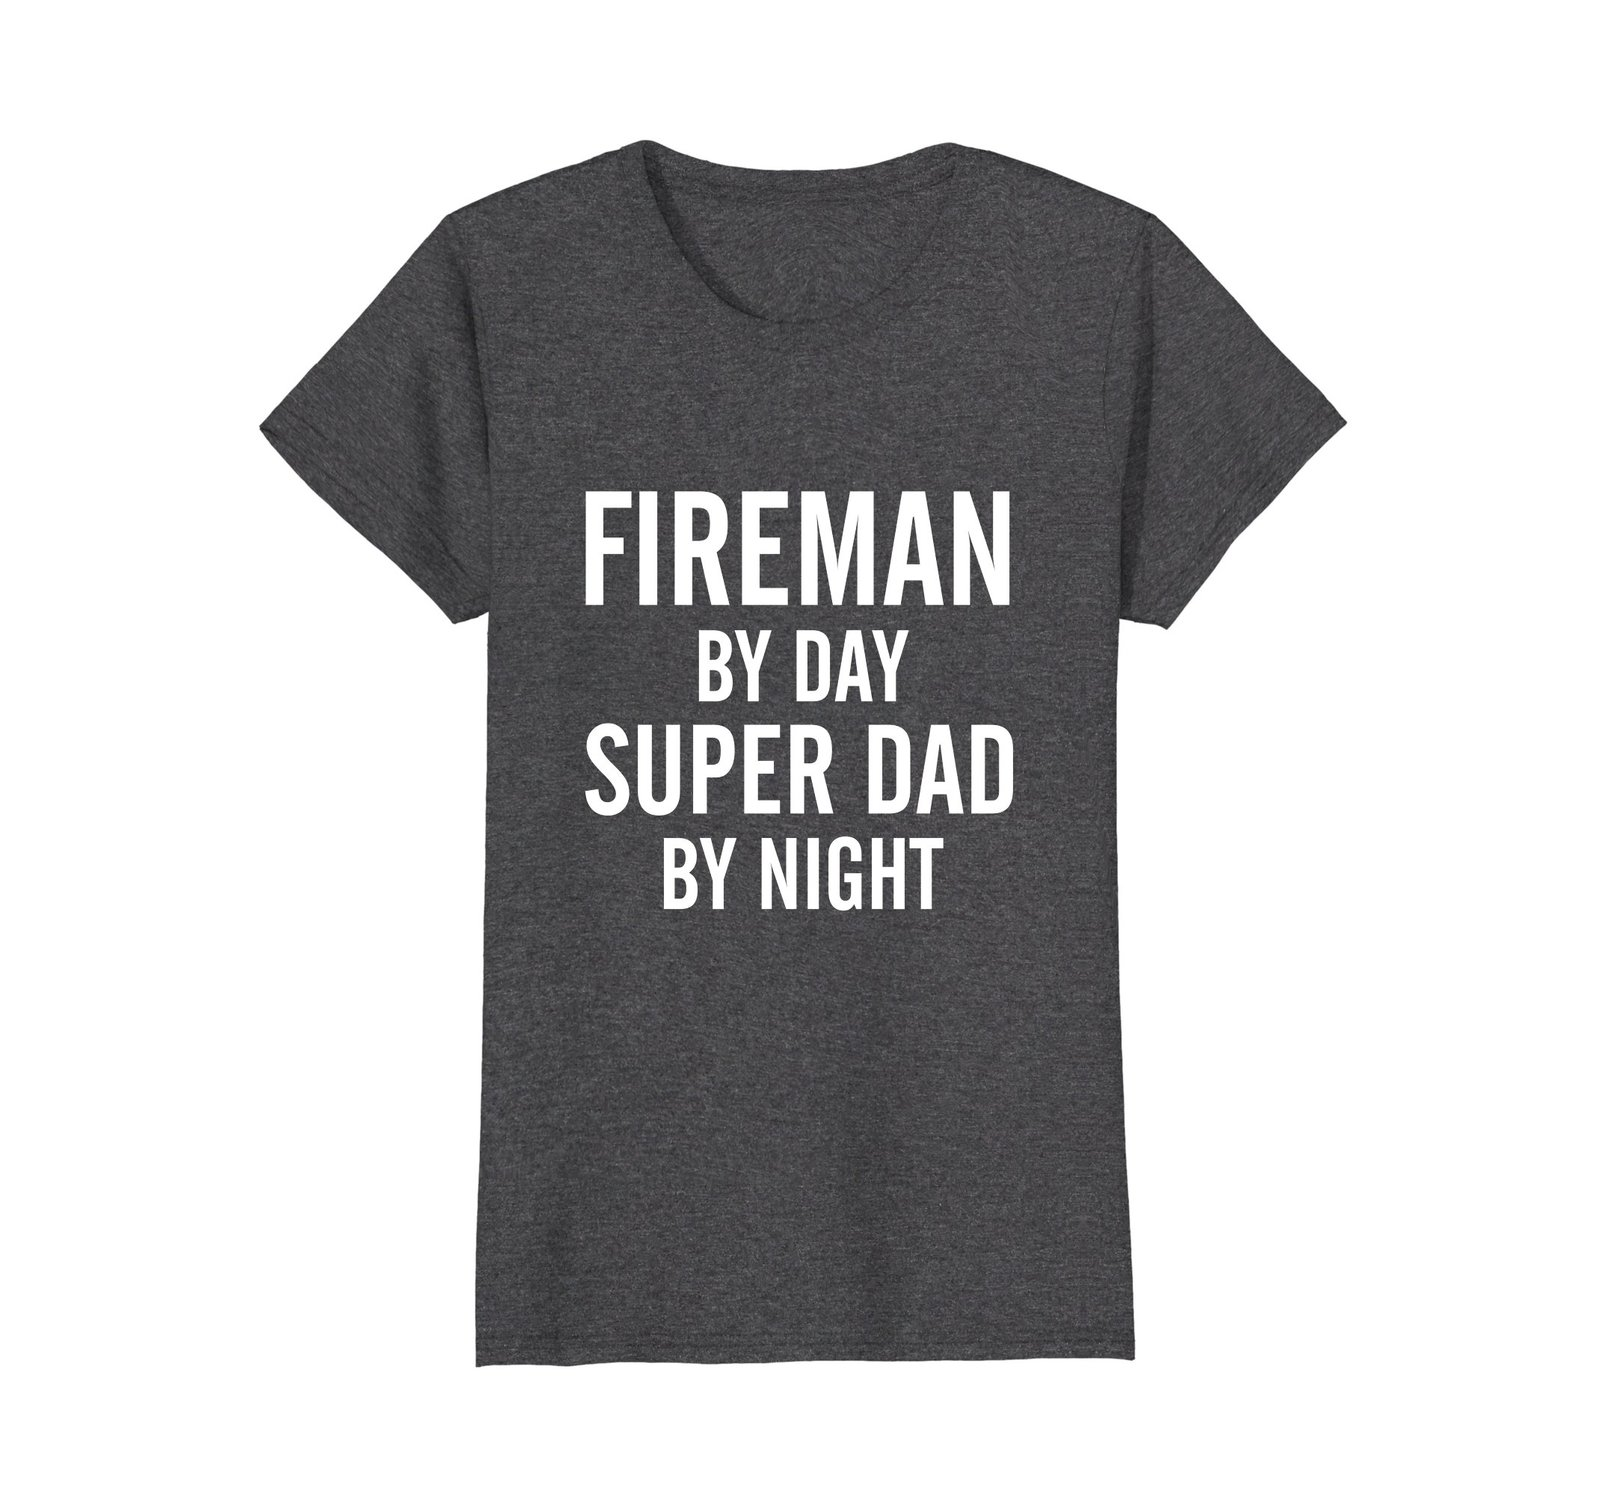 Funny Shirts - Fireman By Day Super Dad By Night Shirt Father's Day Gift Wowen